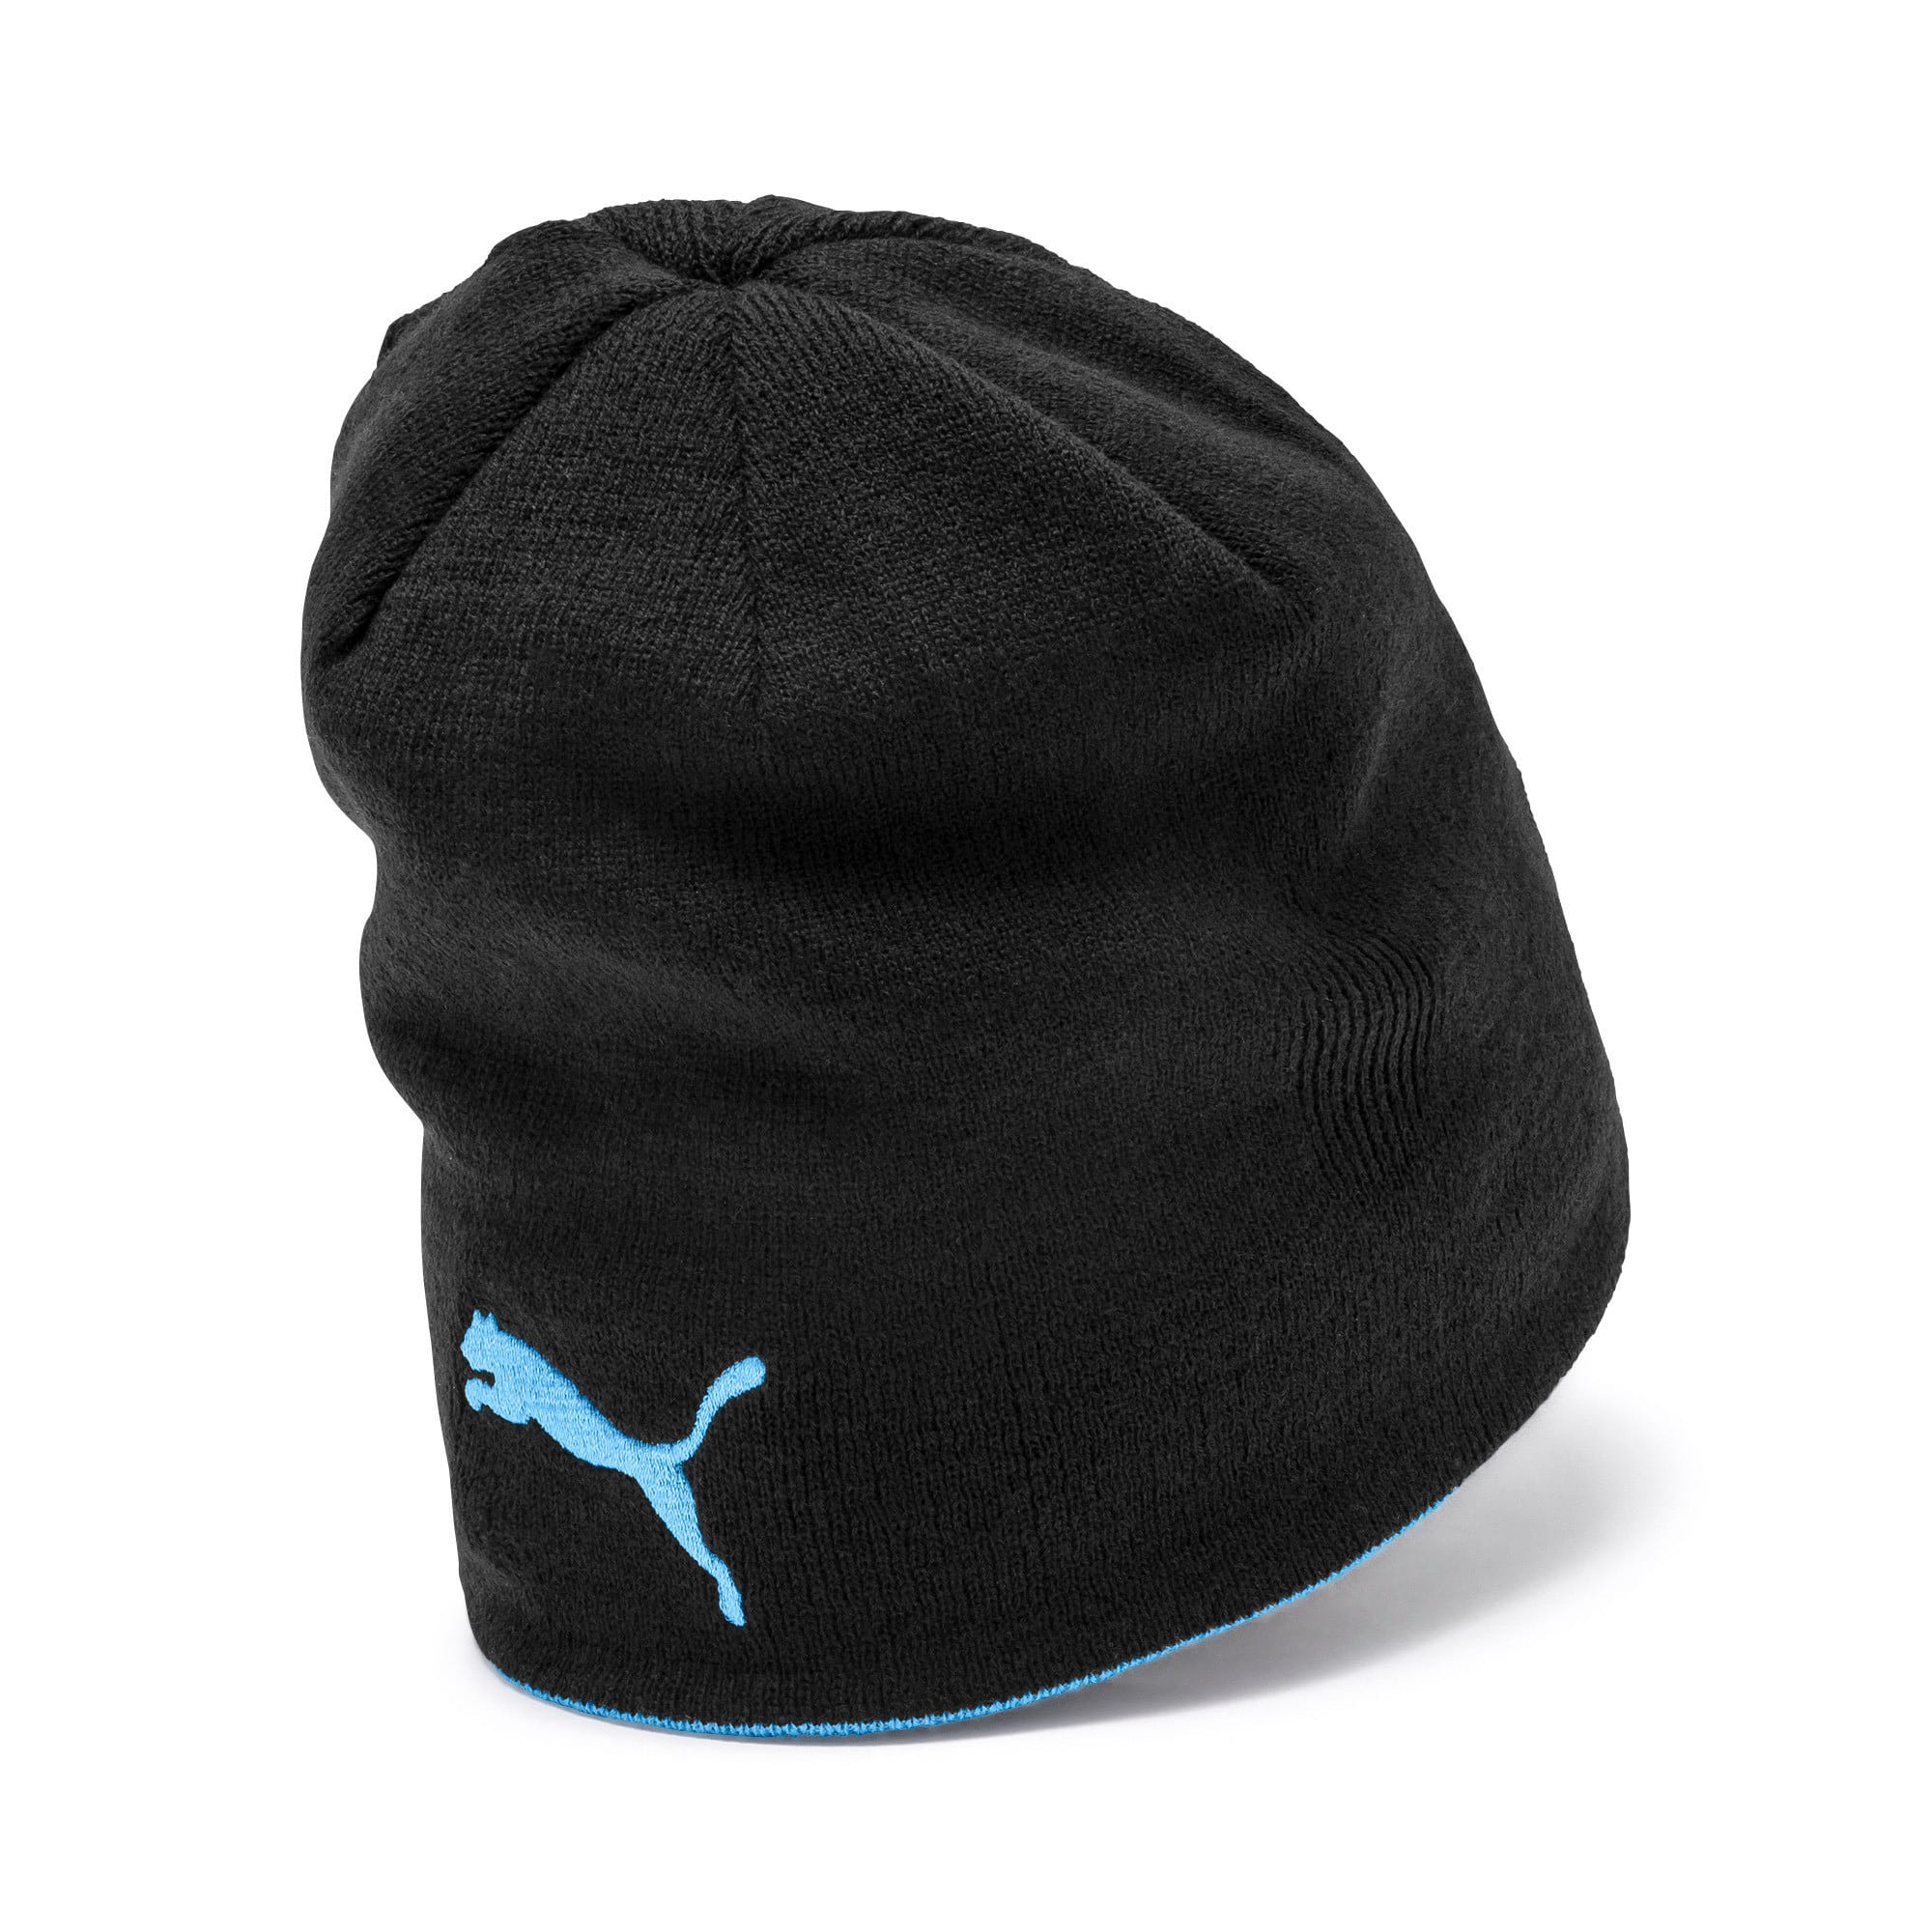 Thumbnail 2 of Man City Reversible Beanie, Puma Black-Team Light Blue, medium